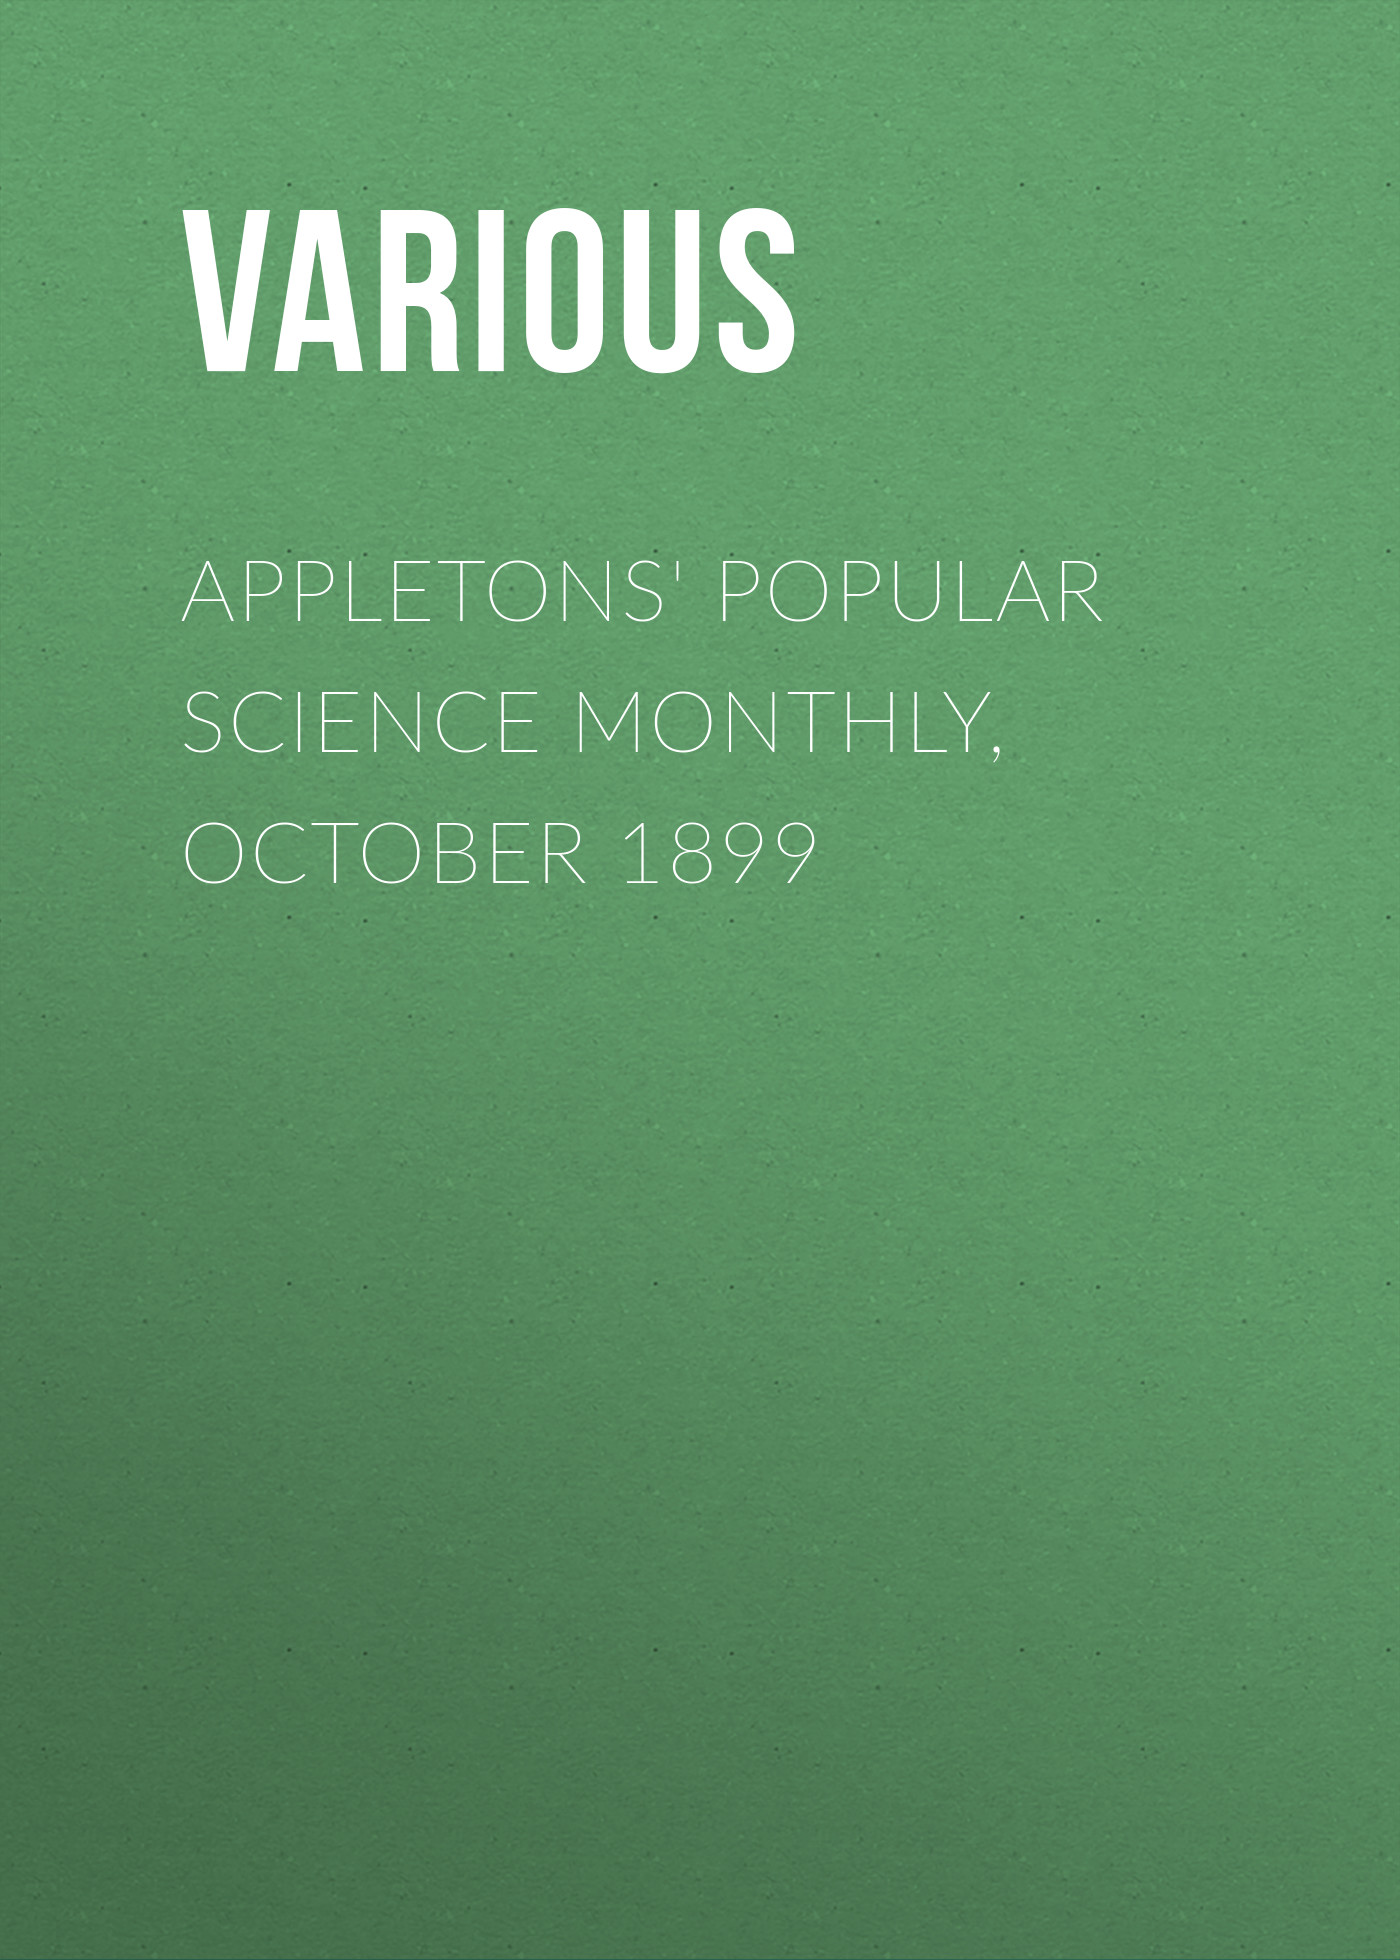 Various Appletons' Popular Science Monthly, October 1899